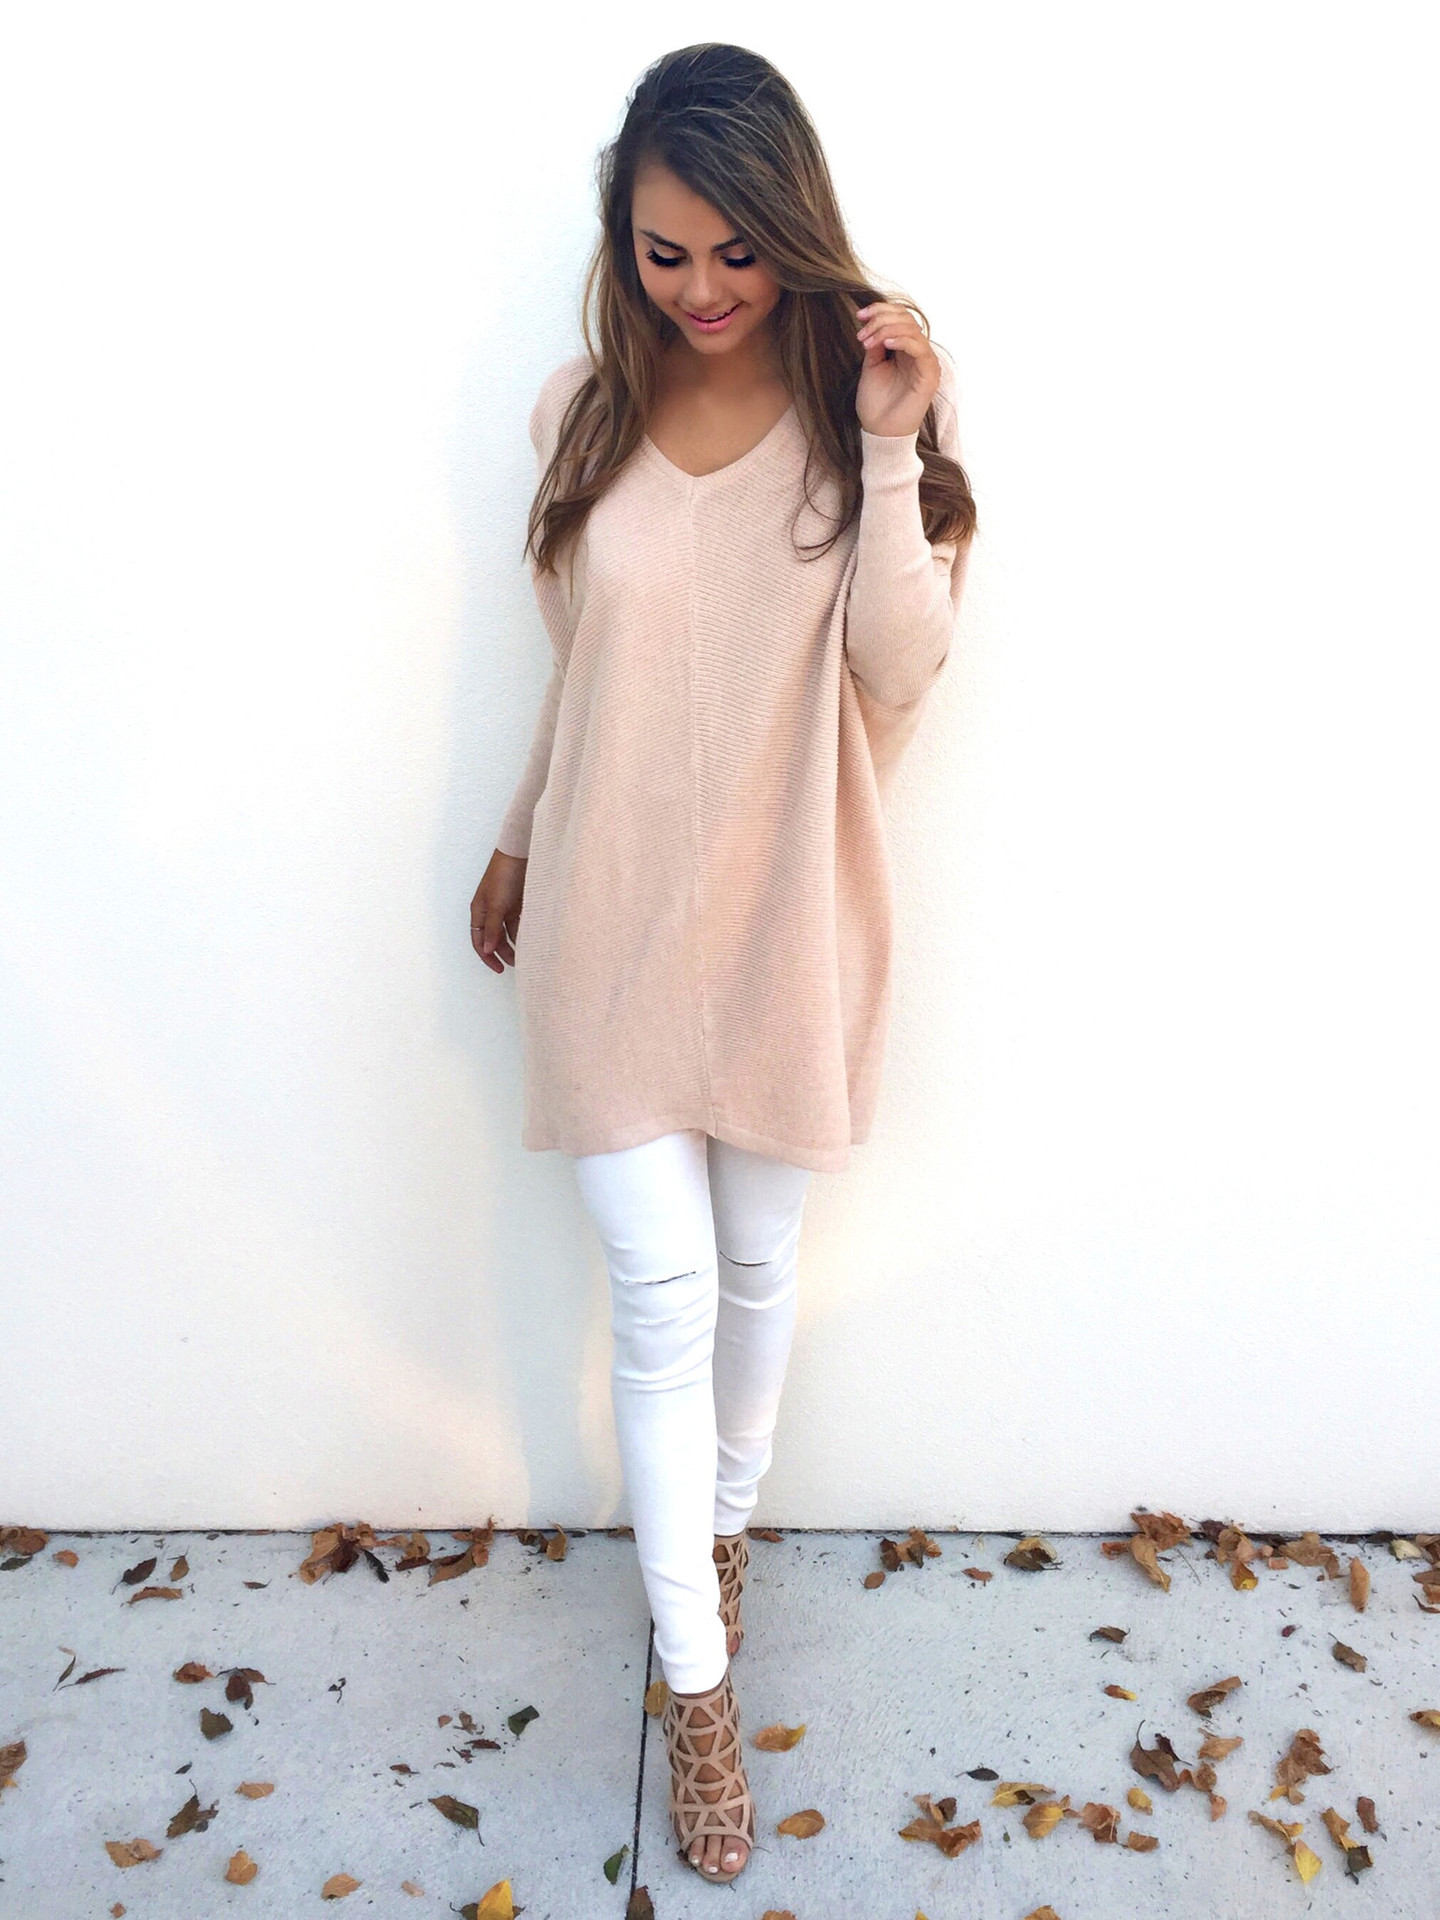 NANABUBU Hot Sale Soft Bat-like Pullovers Female Sweater Pure Casual V-neck Short Design Basic Knitted Pullovers Plus Size S-3XL